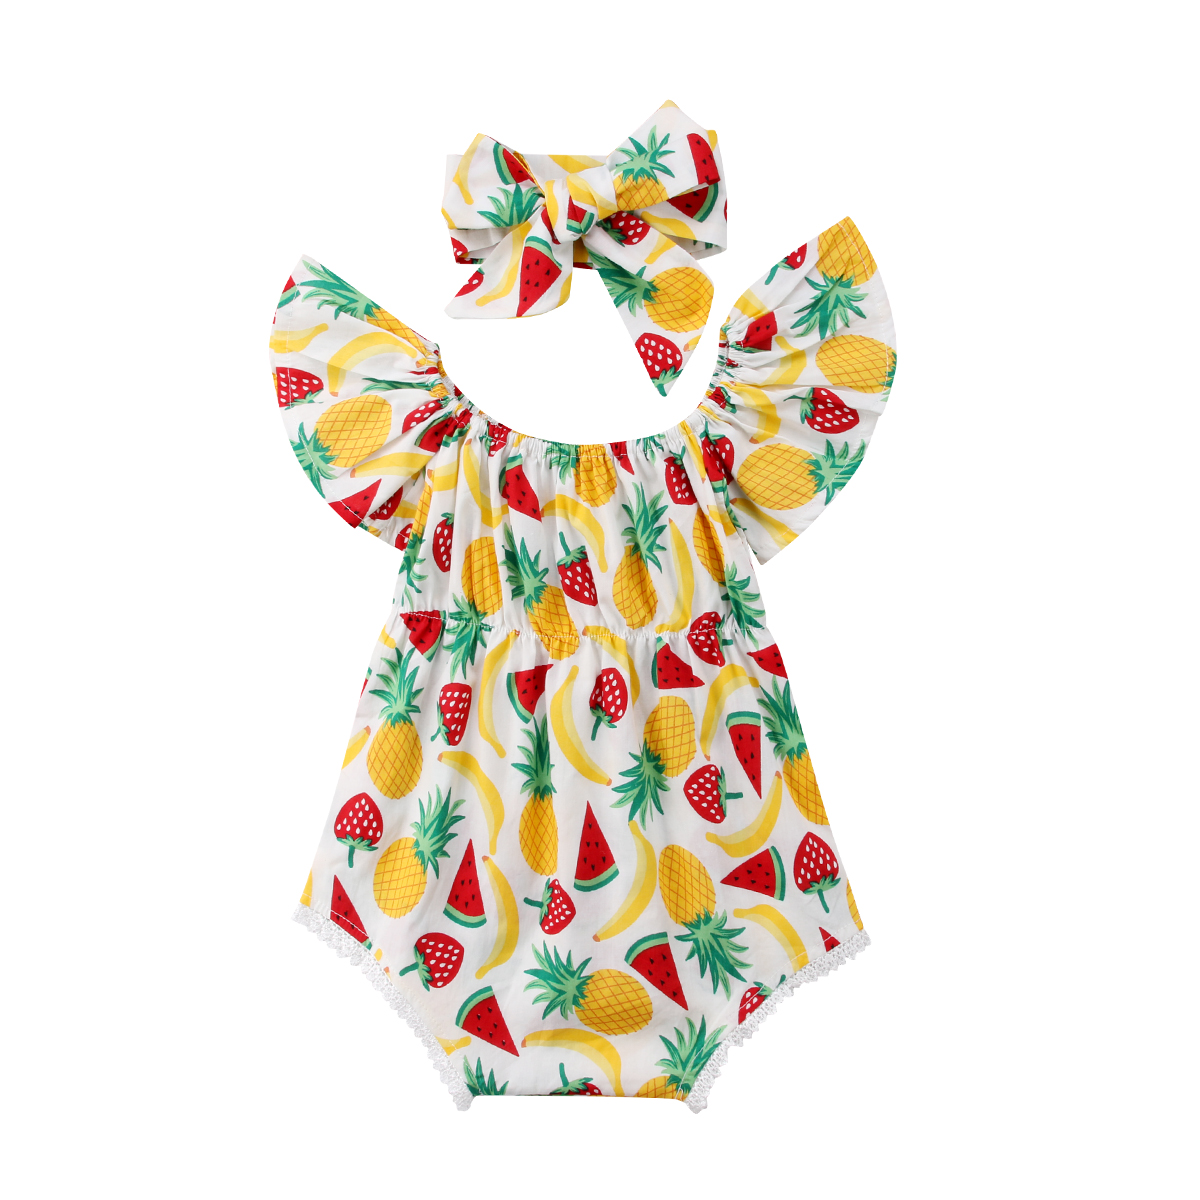 2019 Summer Infant Baby Girls Rompers Fruit Print Jumpsuit Playsuit Pineapple Strawberry Watermelon Ruffle Romper with Headband